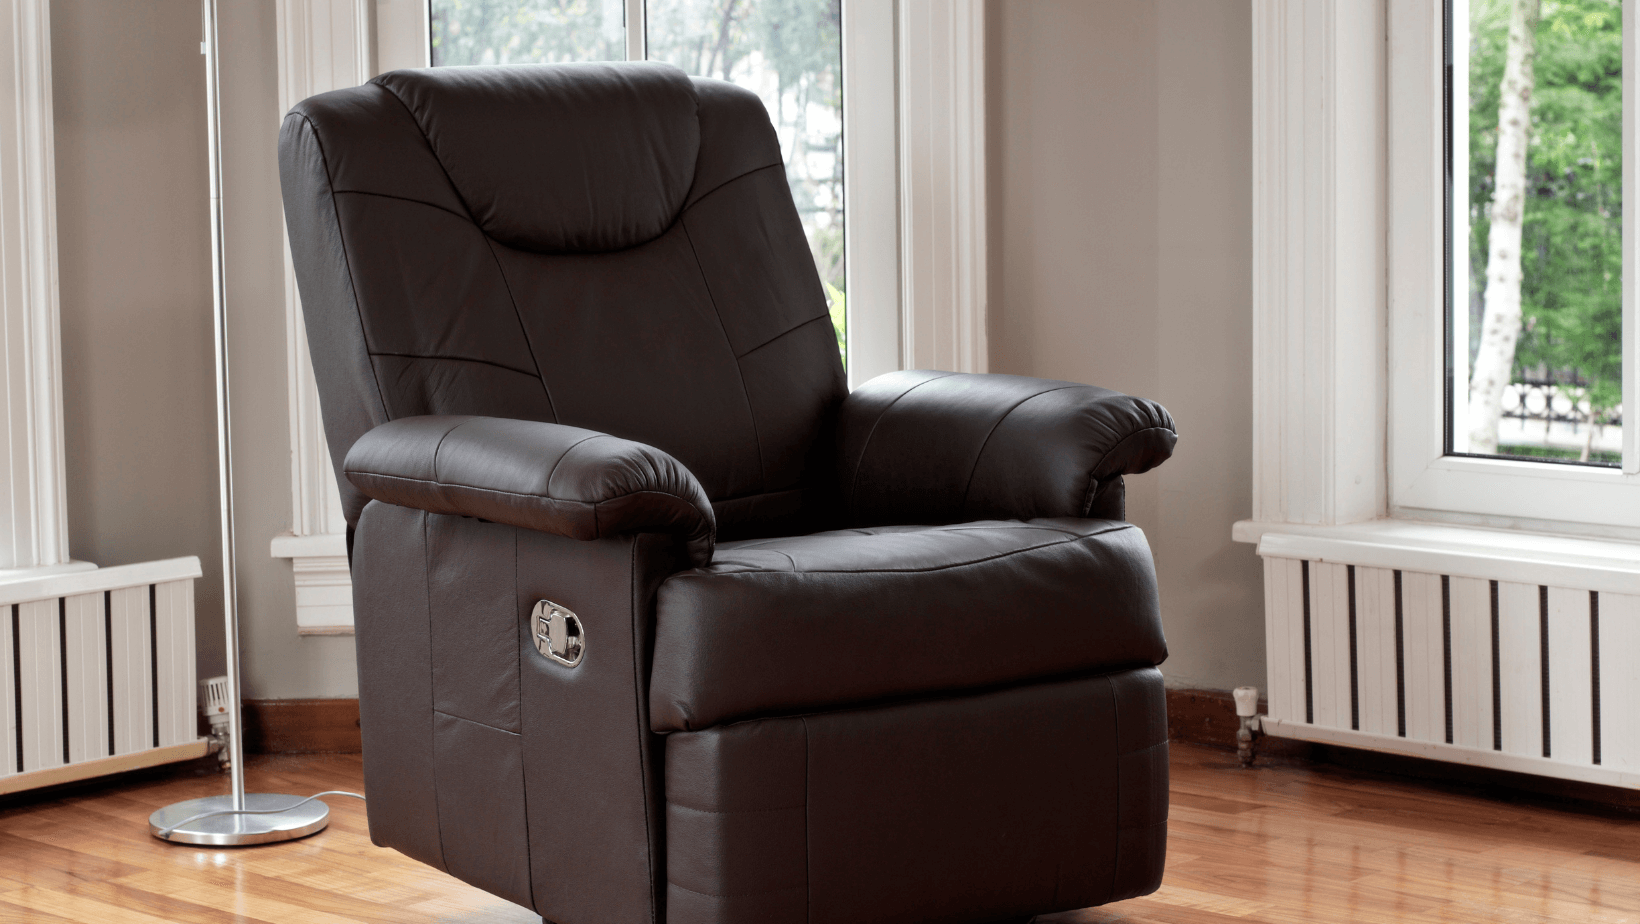 brown leather reclining chair in the corner of a living toom